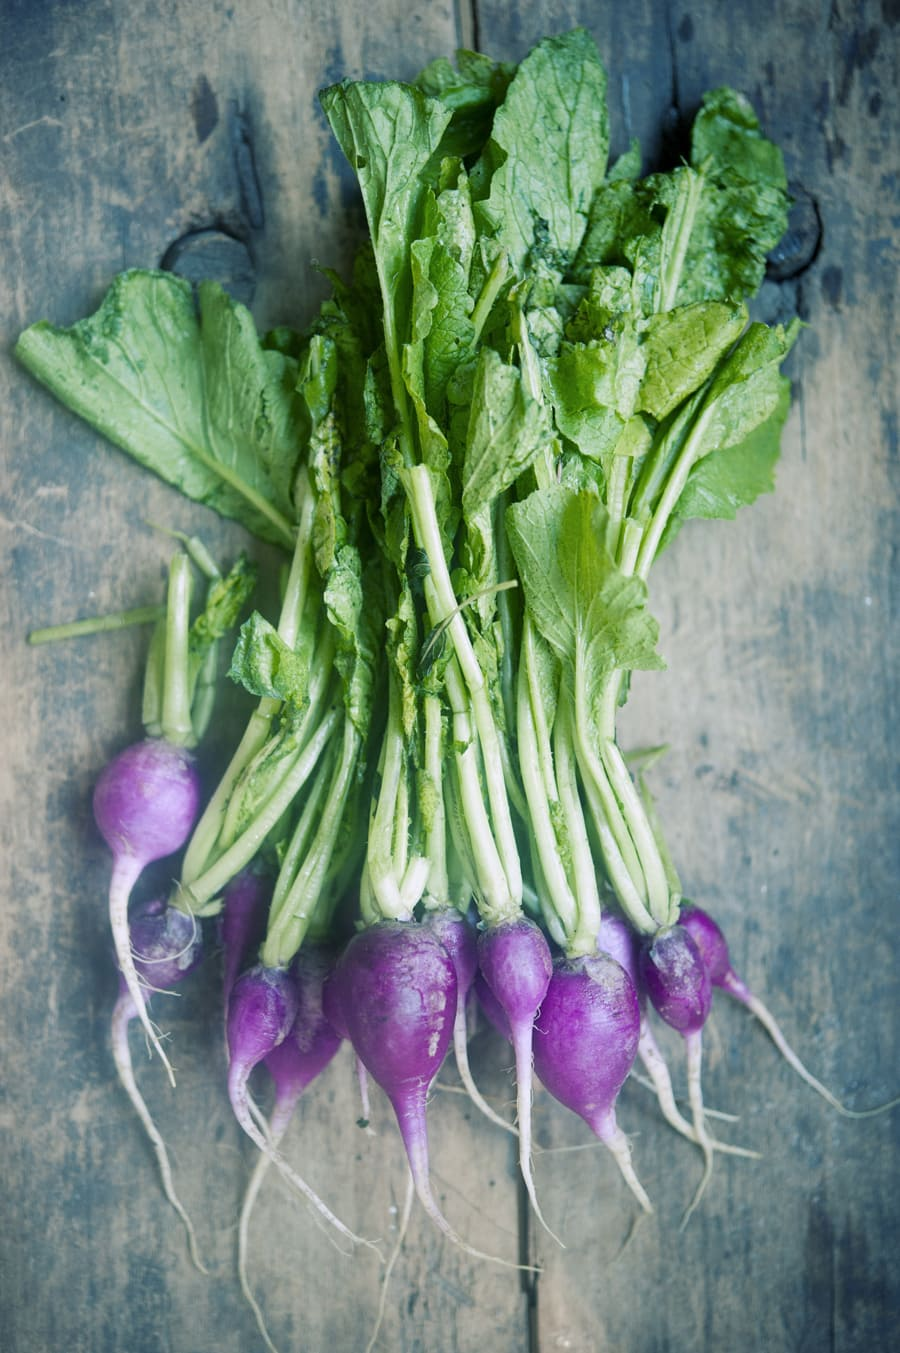 Buttered Radishes